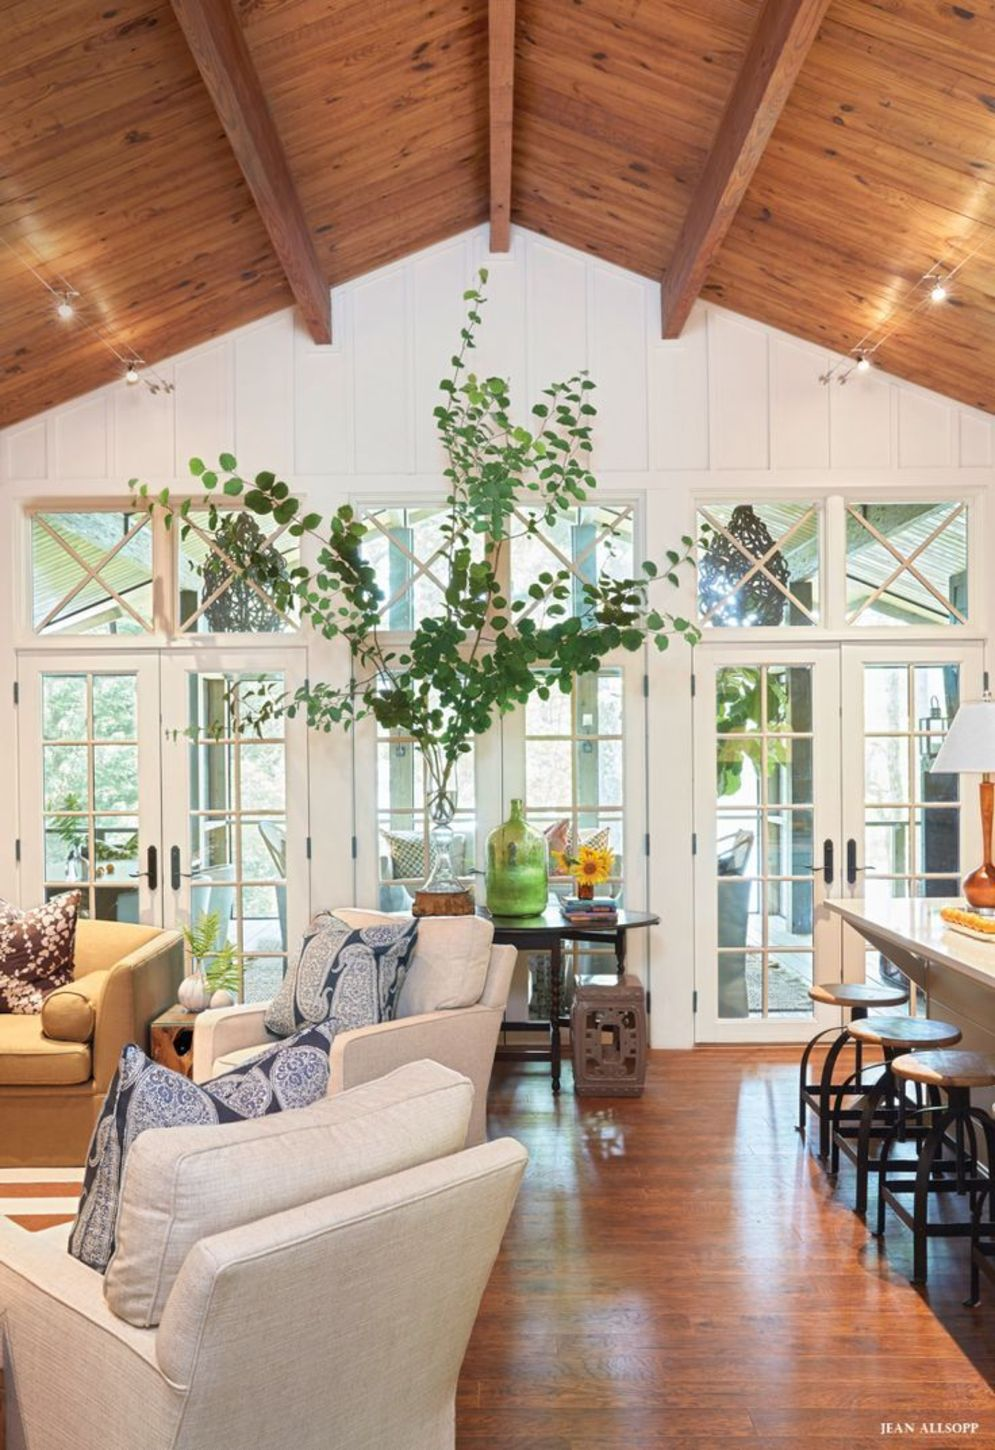 Classic home style with cathedral ceiling which looks gorgeous and grand along with classy interior taste Image 13